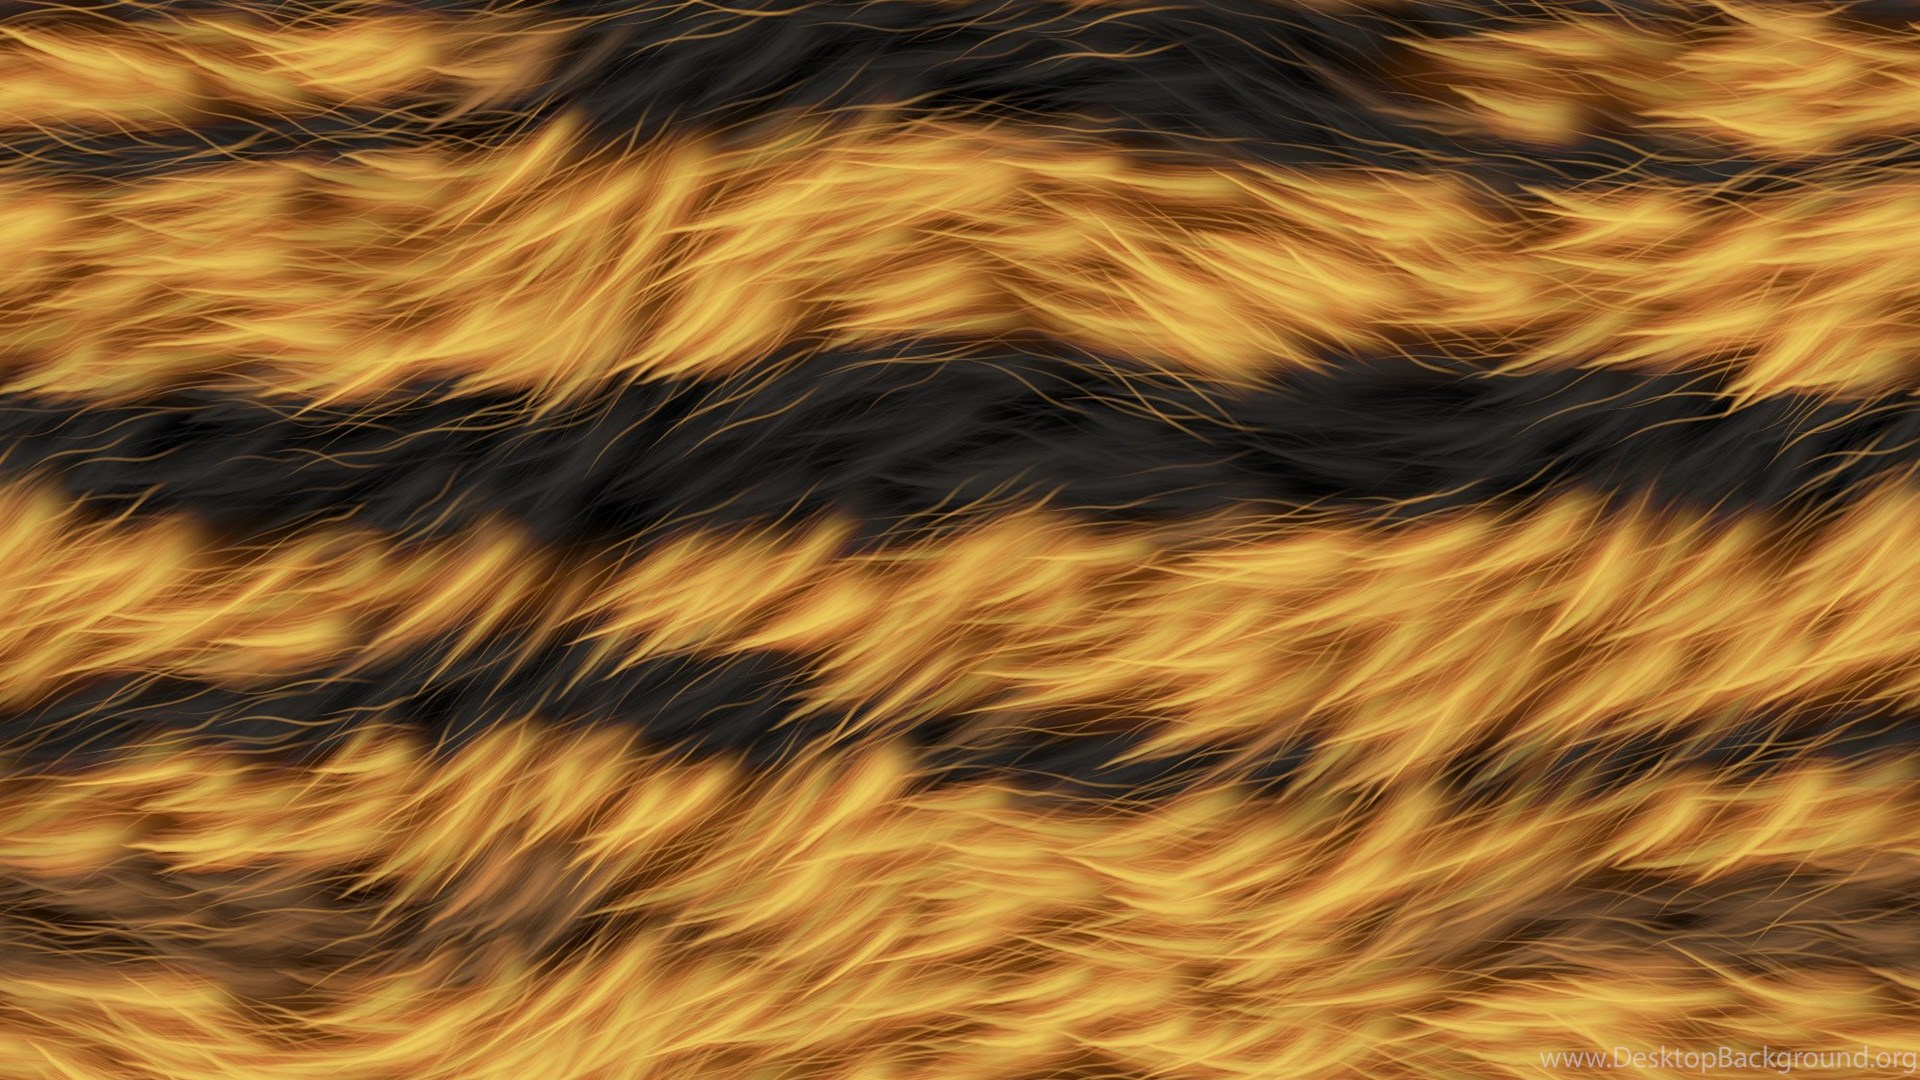 Great Seamless Images For A Fur Texture Or Fur Backgrounds Desktop ...